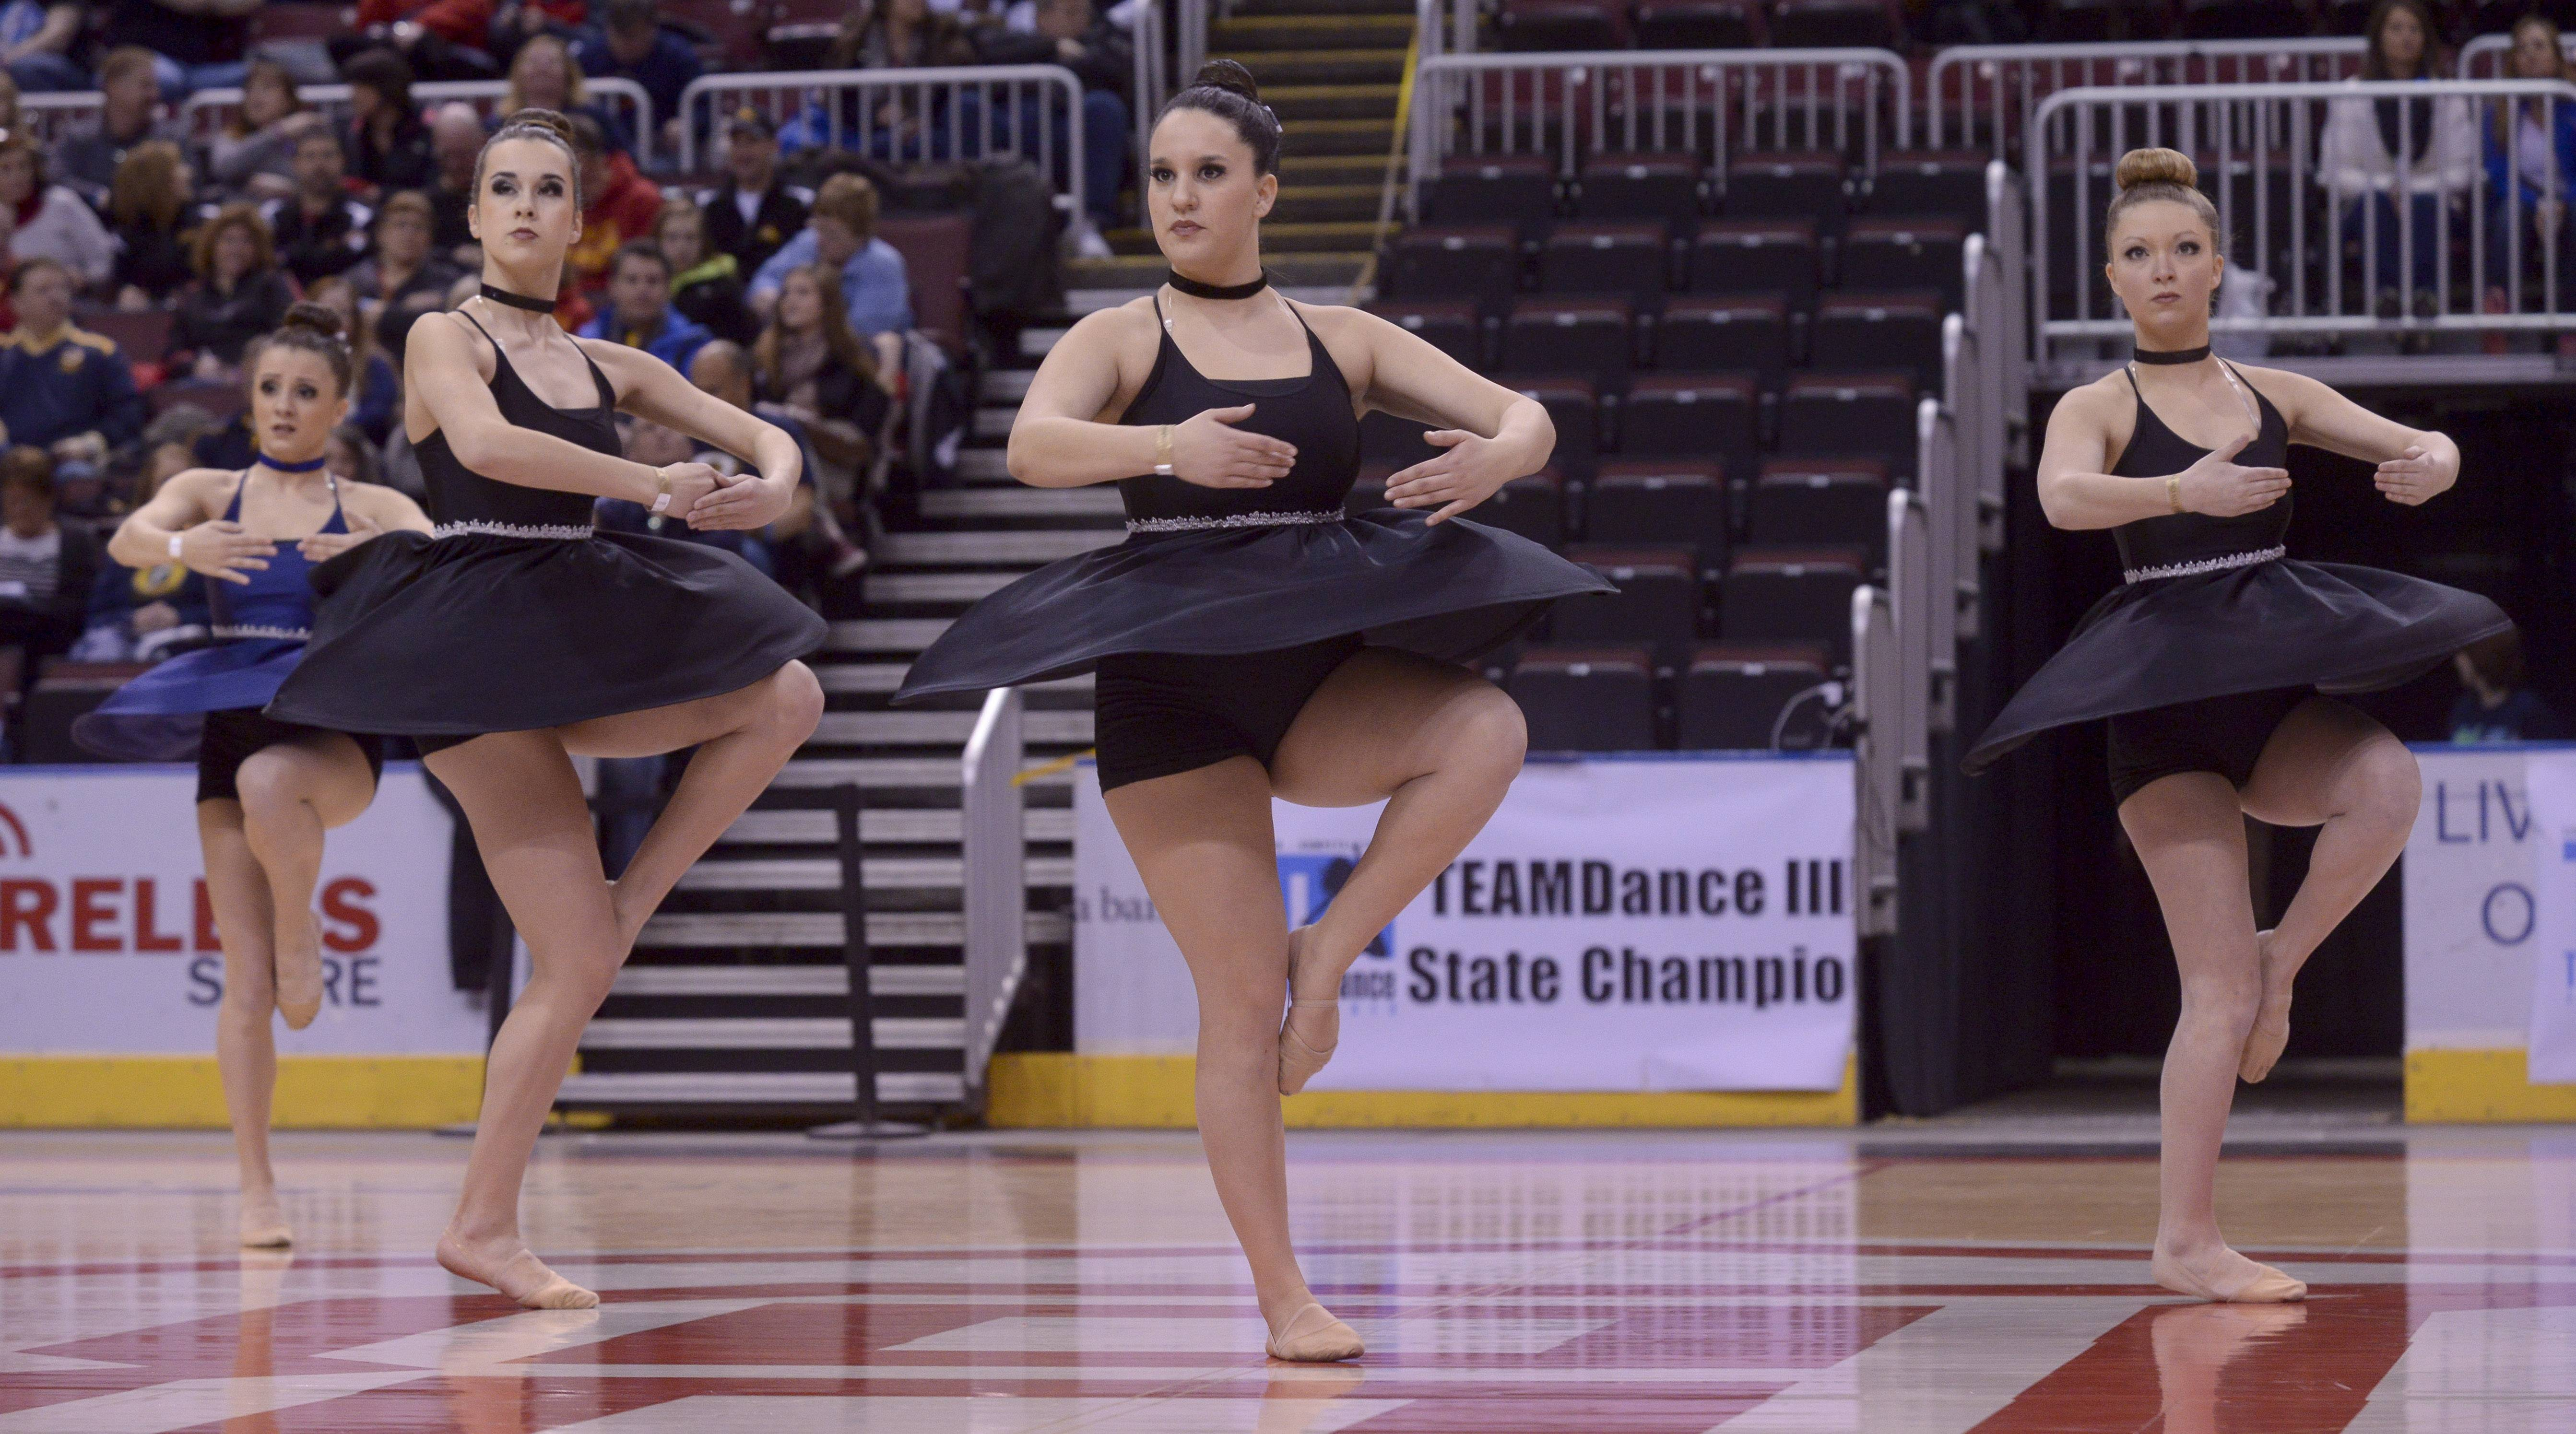 Larkin High School performs in the 2A Lyrical category during the TEAMDance Illinois 2014 Grand Championship in Peoria, Sunday March 2nd.